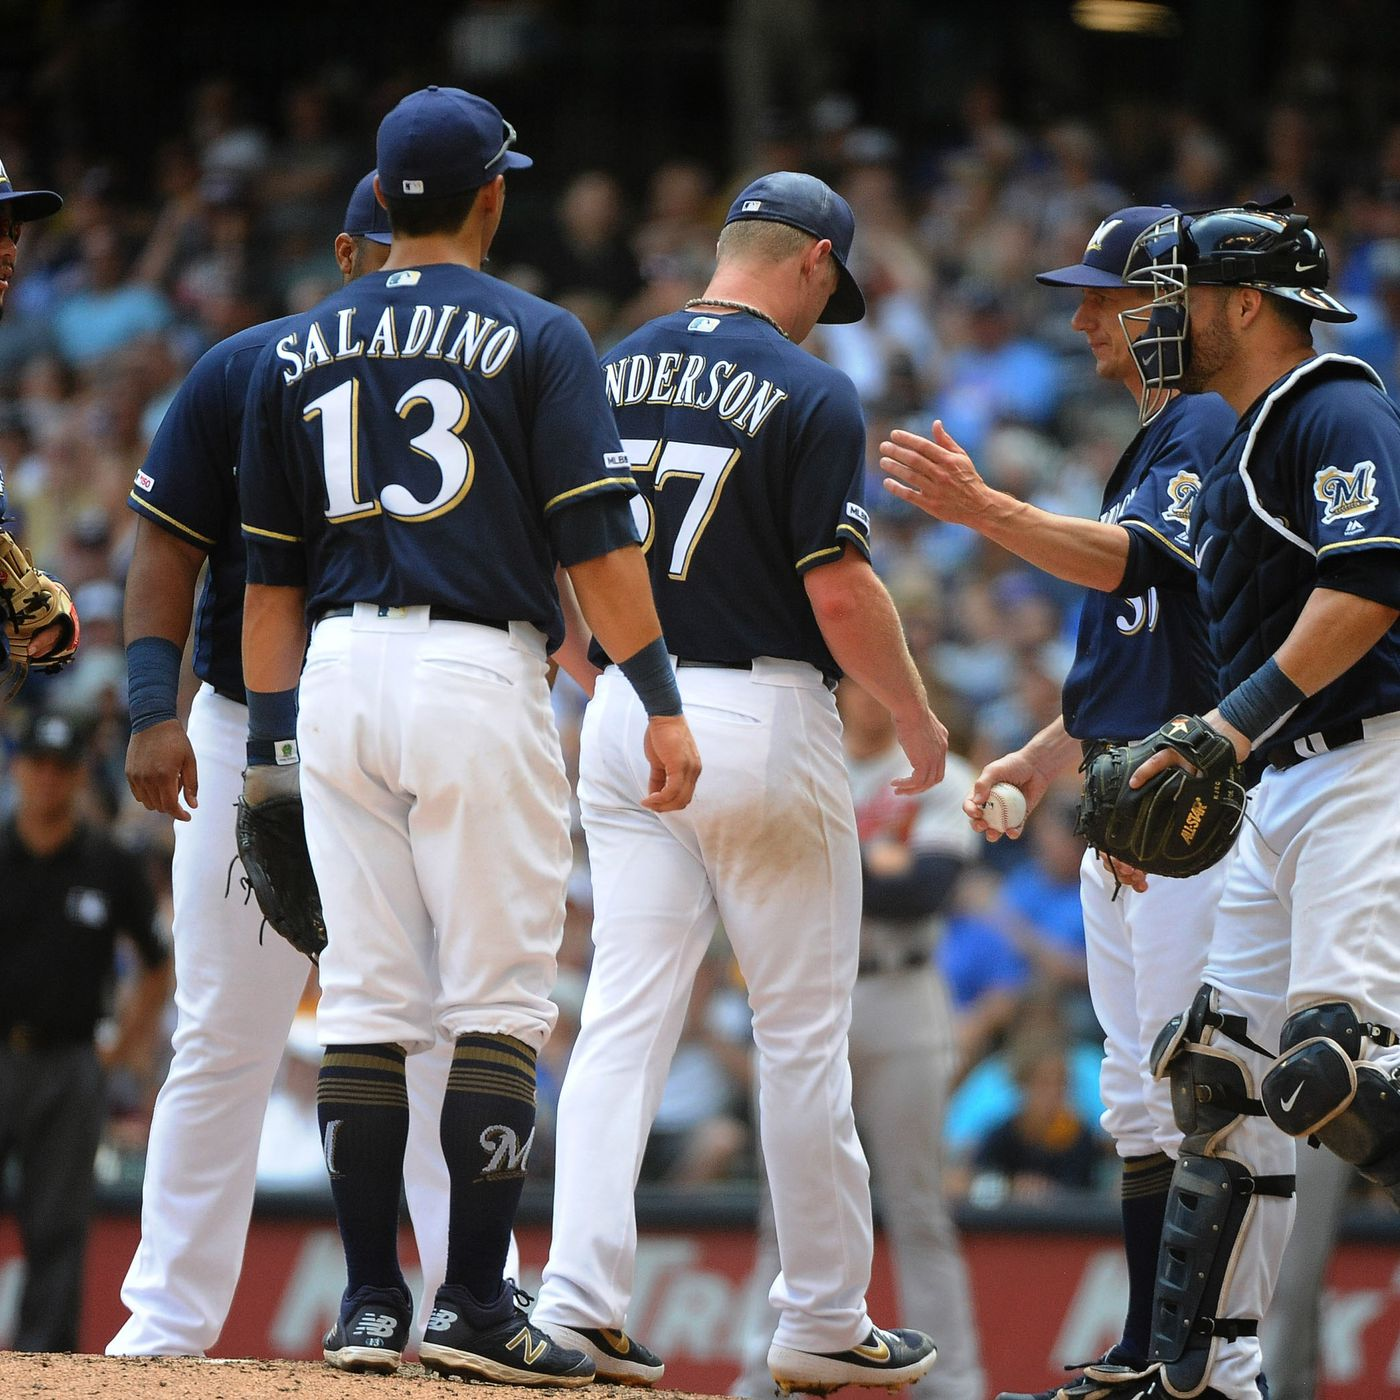 Milwaukee Brewers pitching has had problems on 0-2 counts - Brew